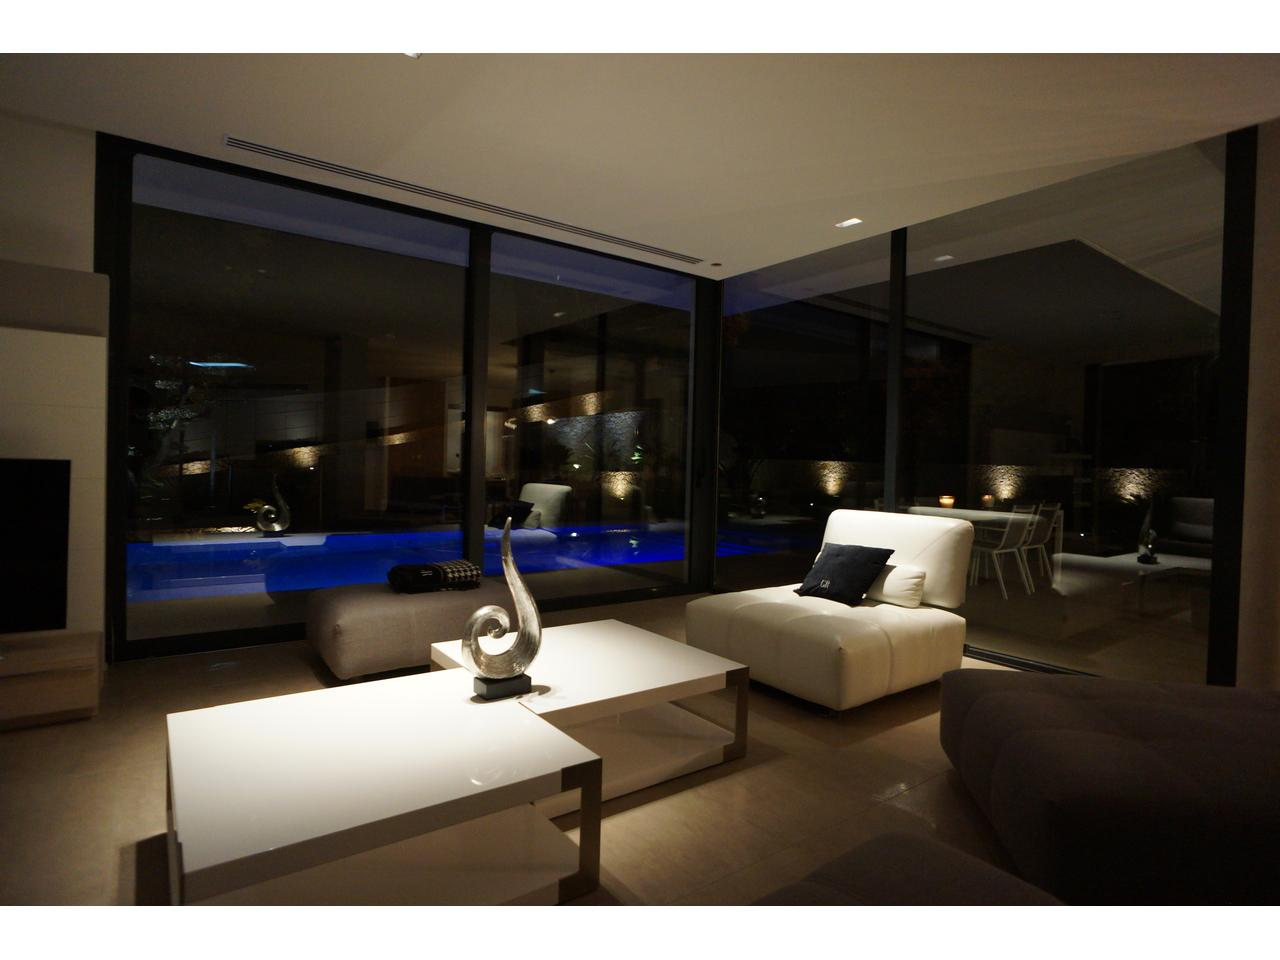 Living area at night